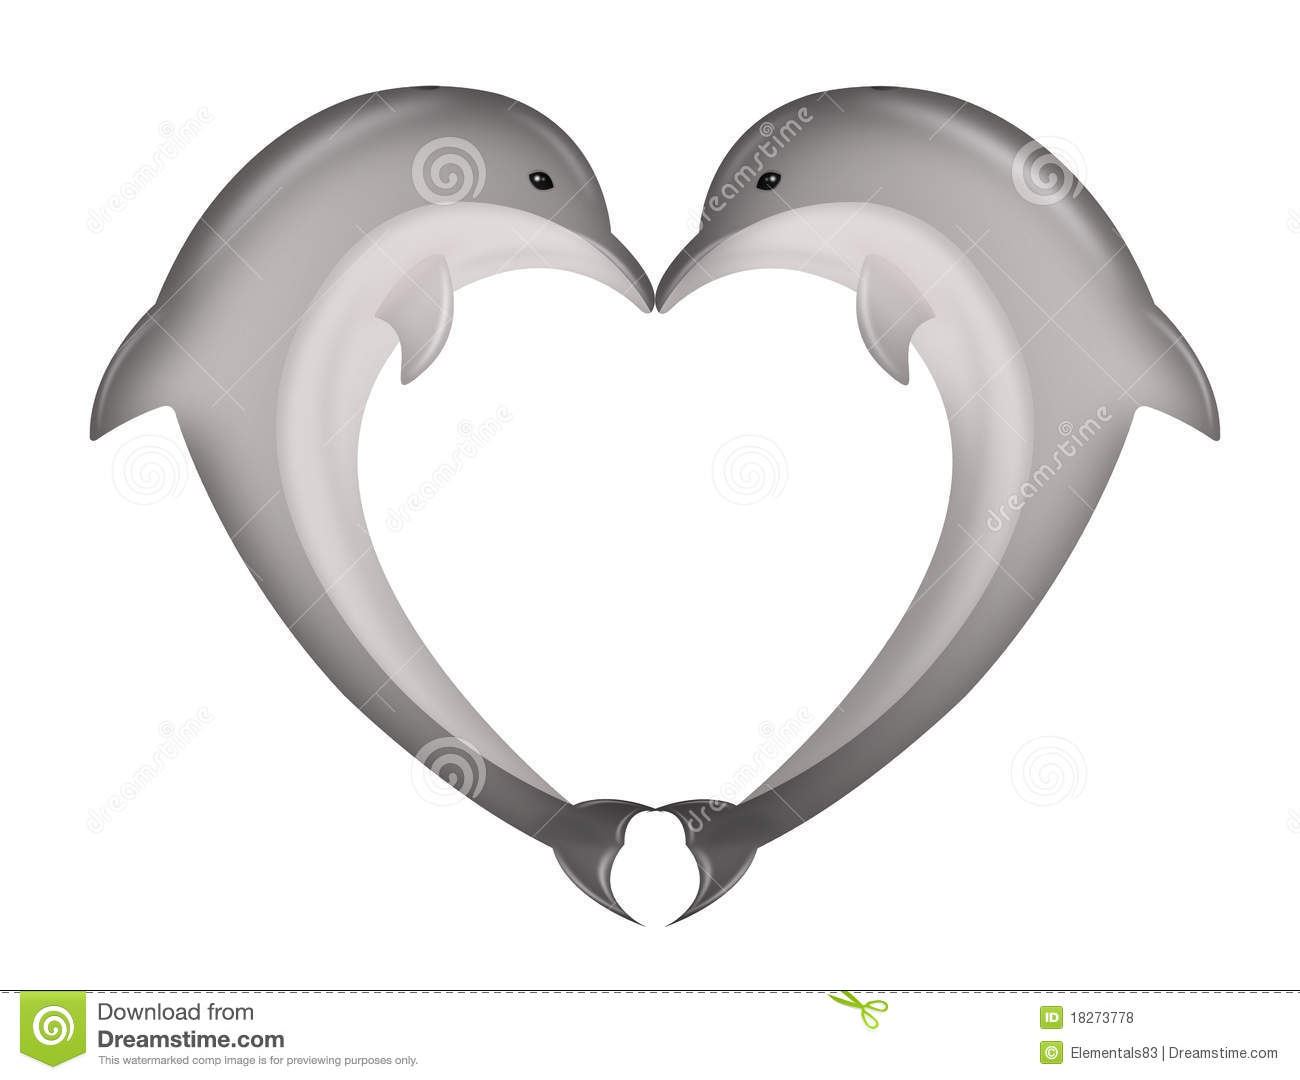 Dolphin clipart heart. Station